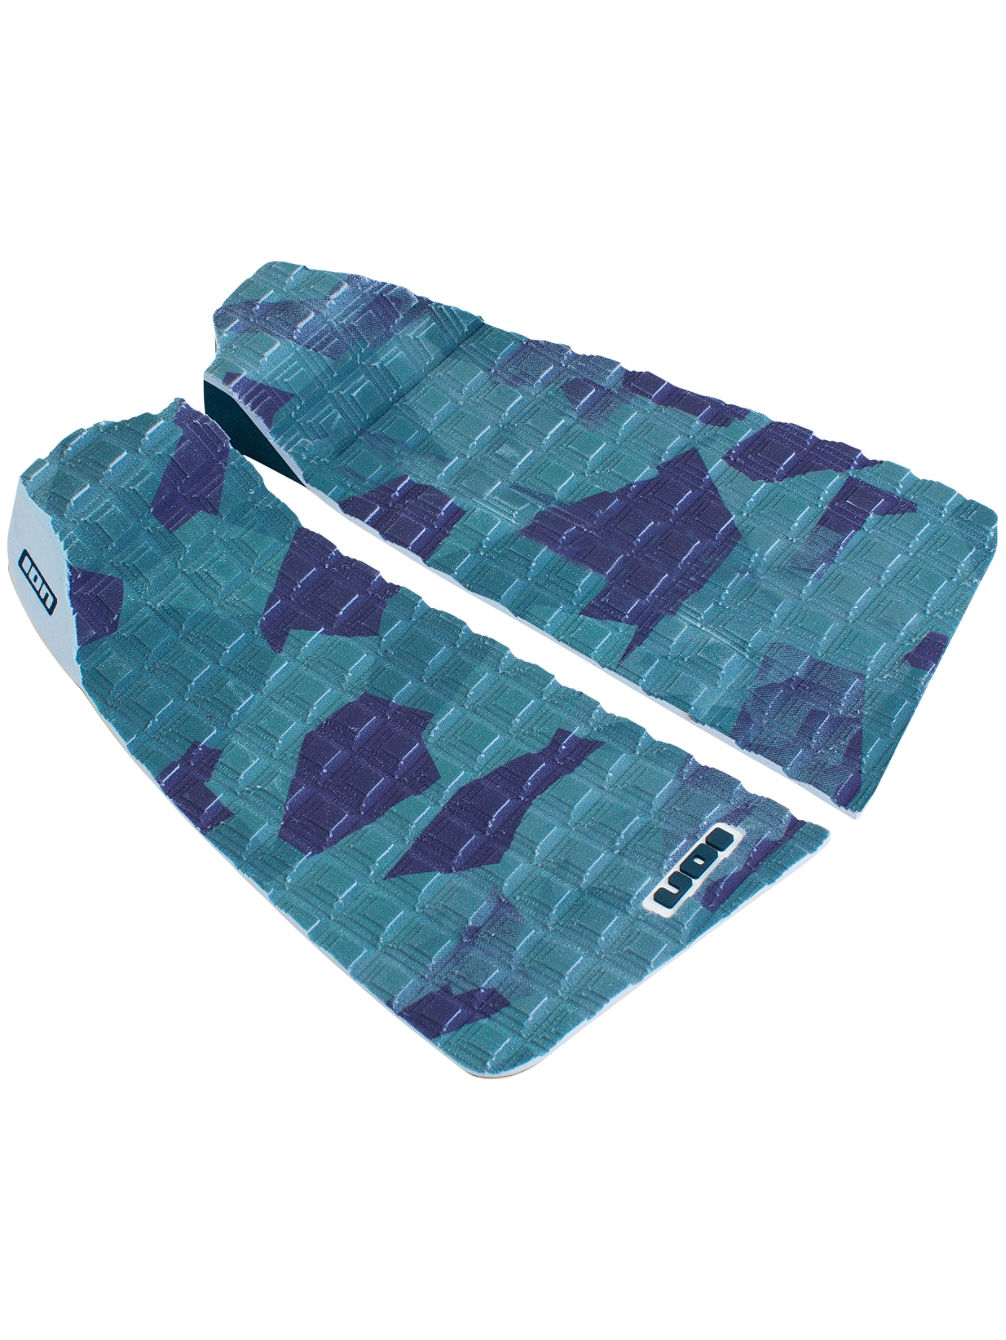 Camouflage (2Pcs) Tail Pad